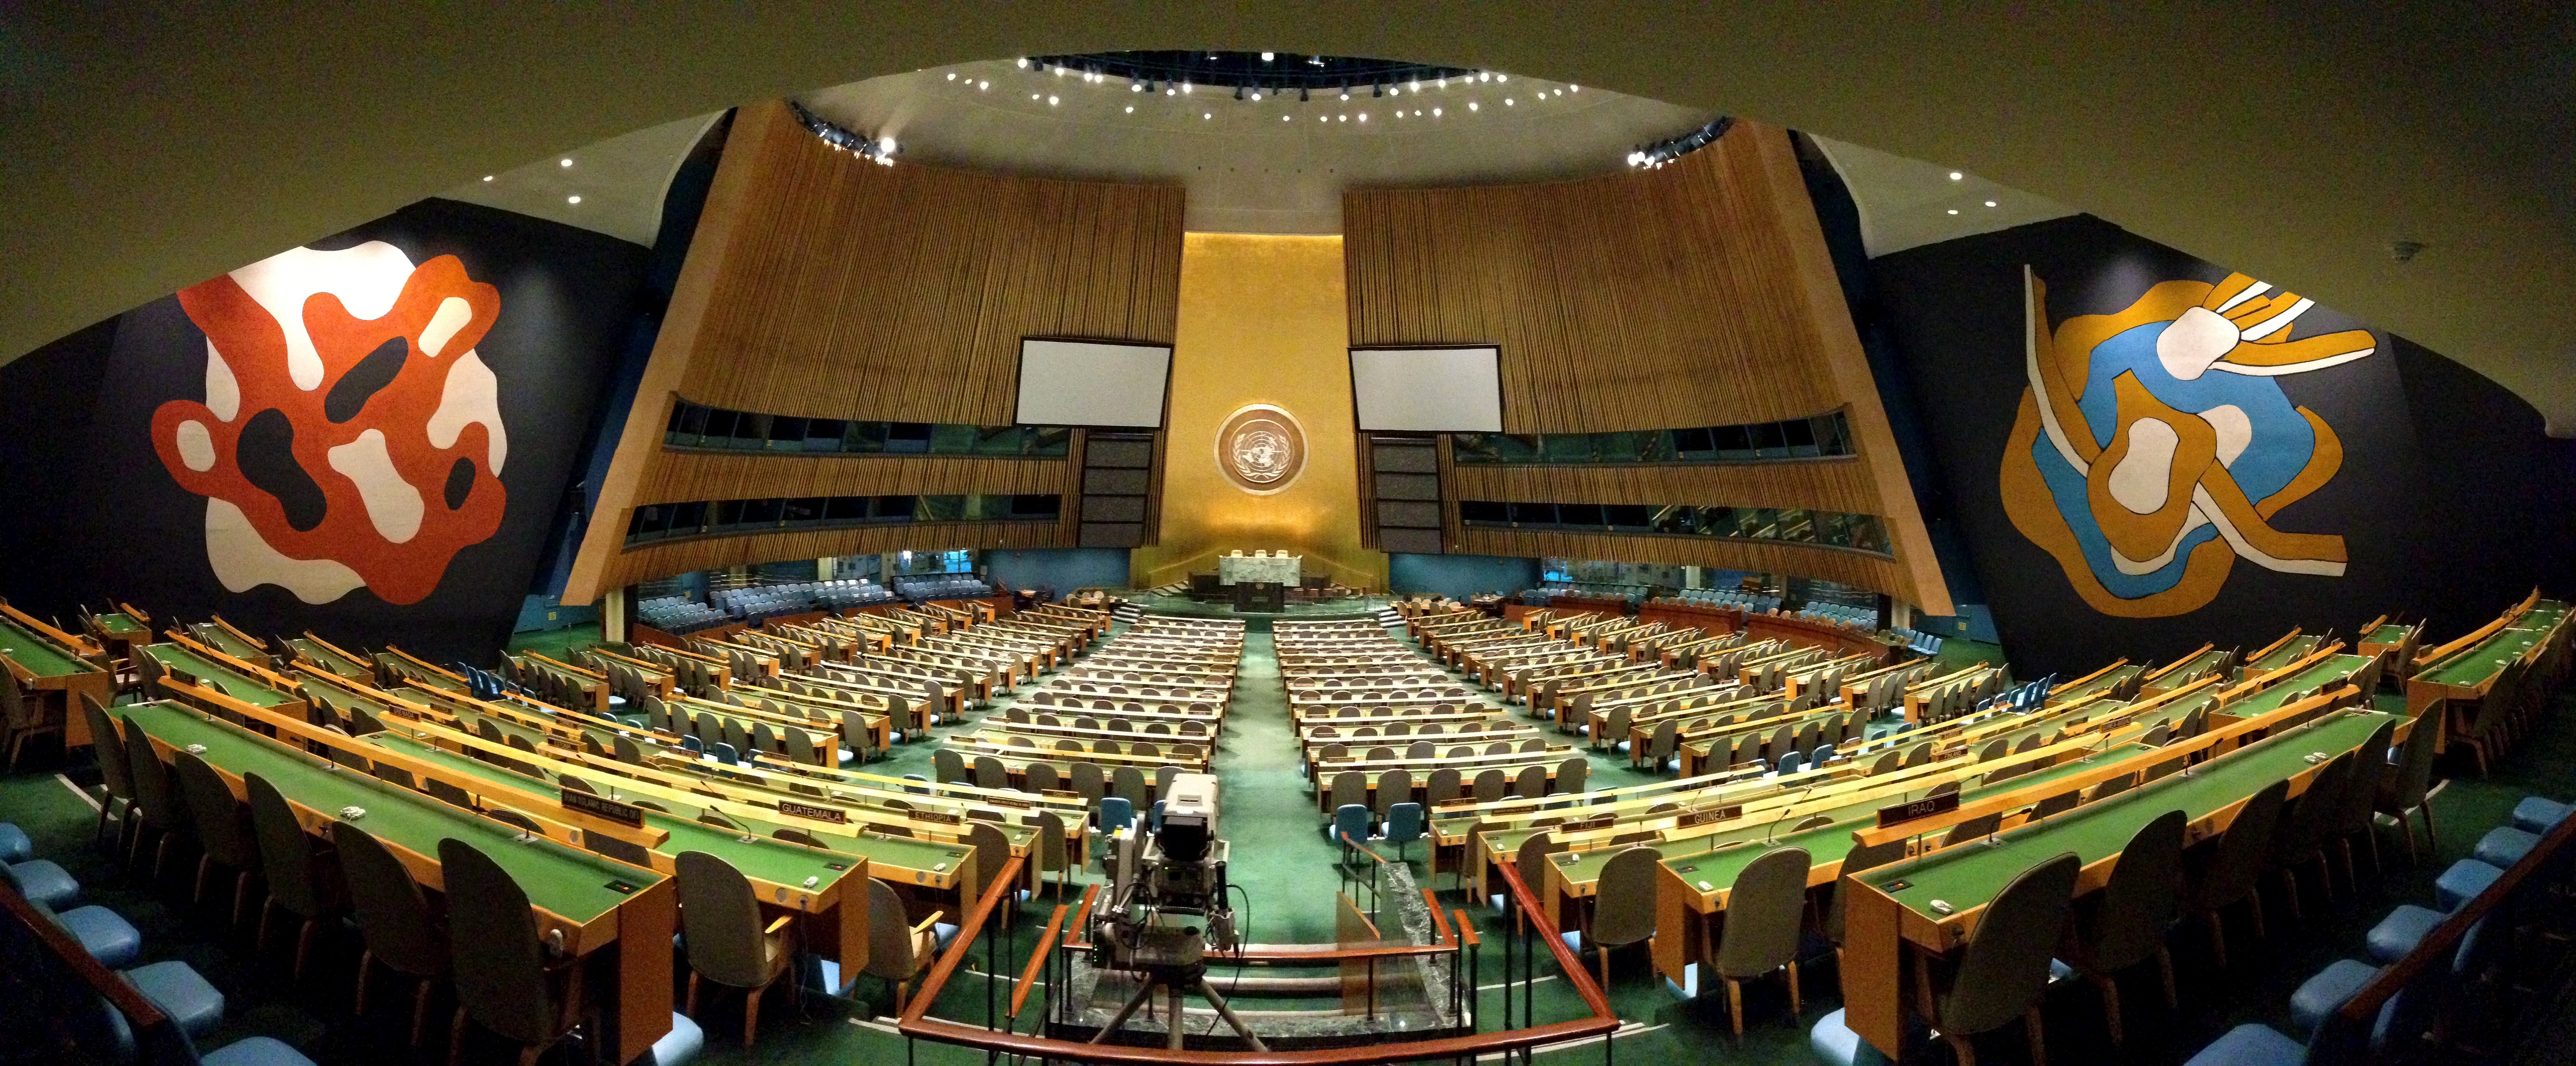 What kind of involvement does the United Nations take in any current world affair?